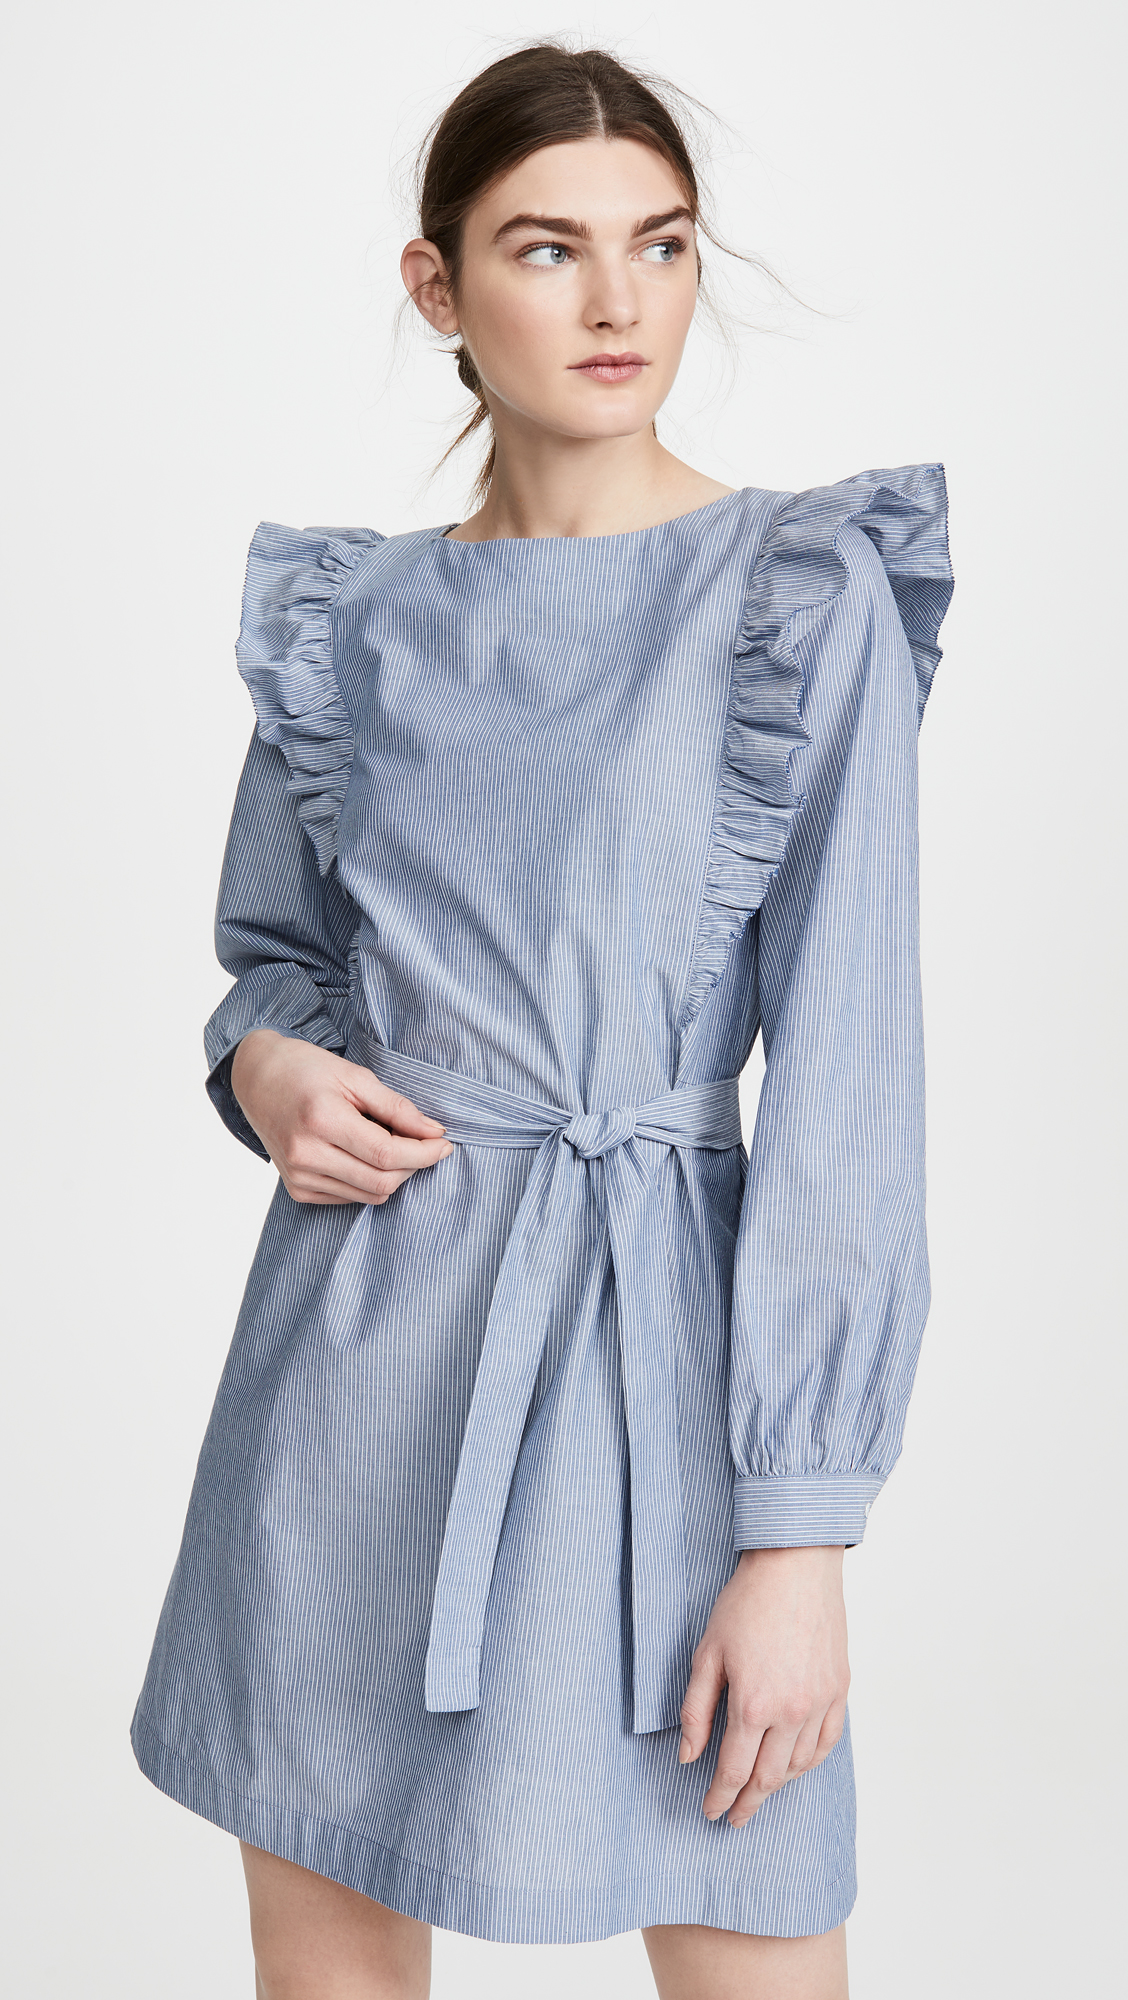 A.P.C. Robe Tess Dress